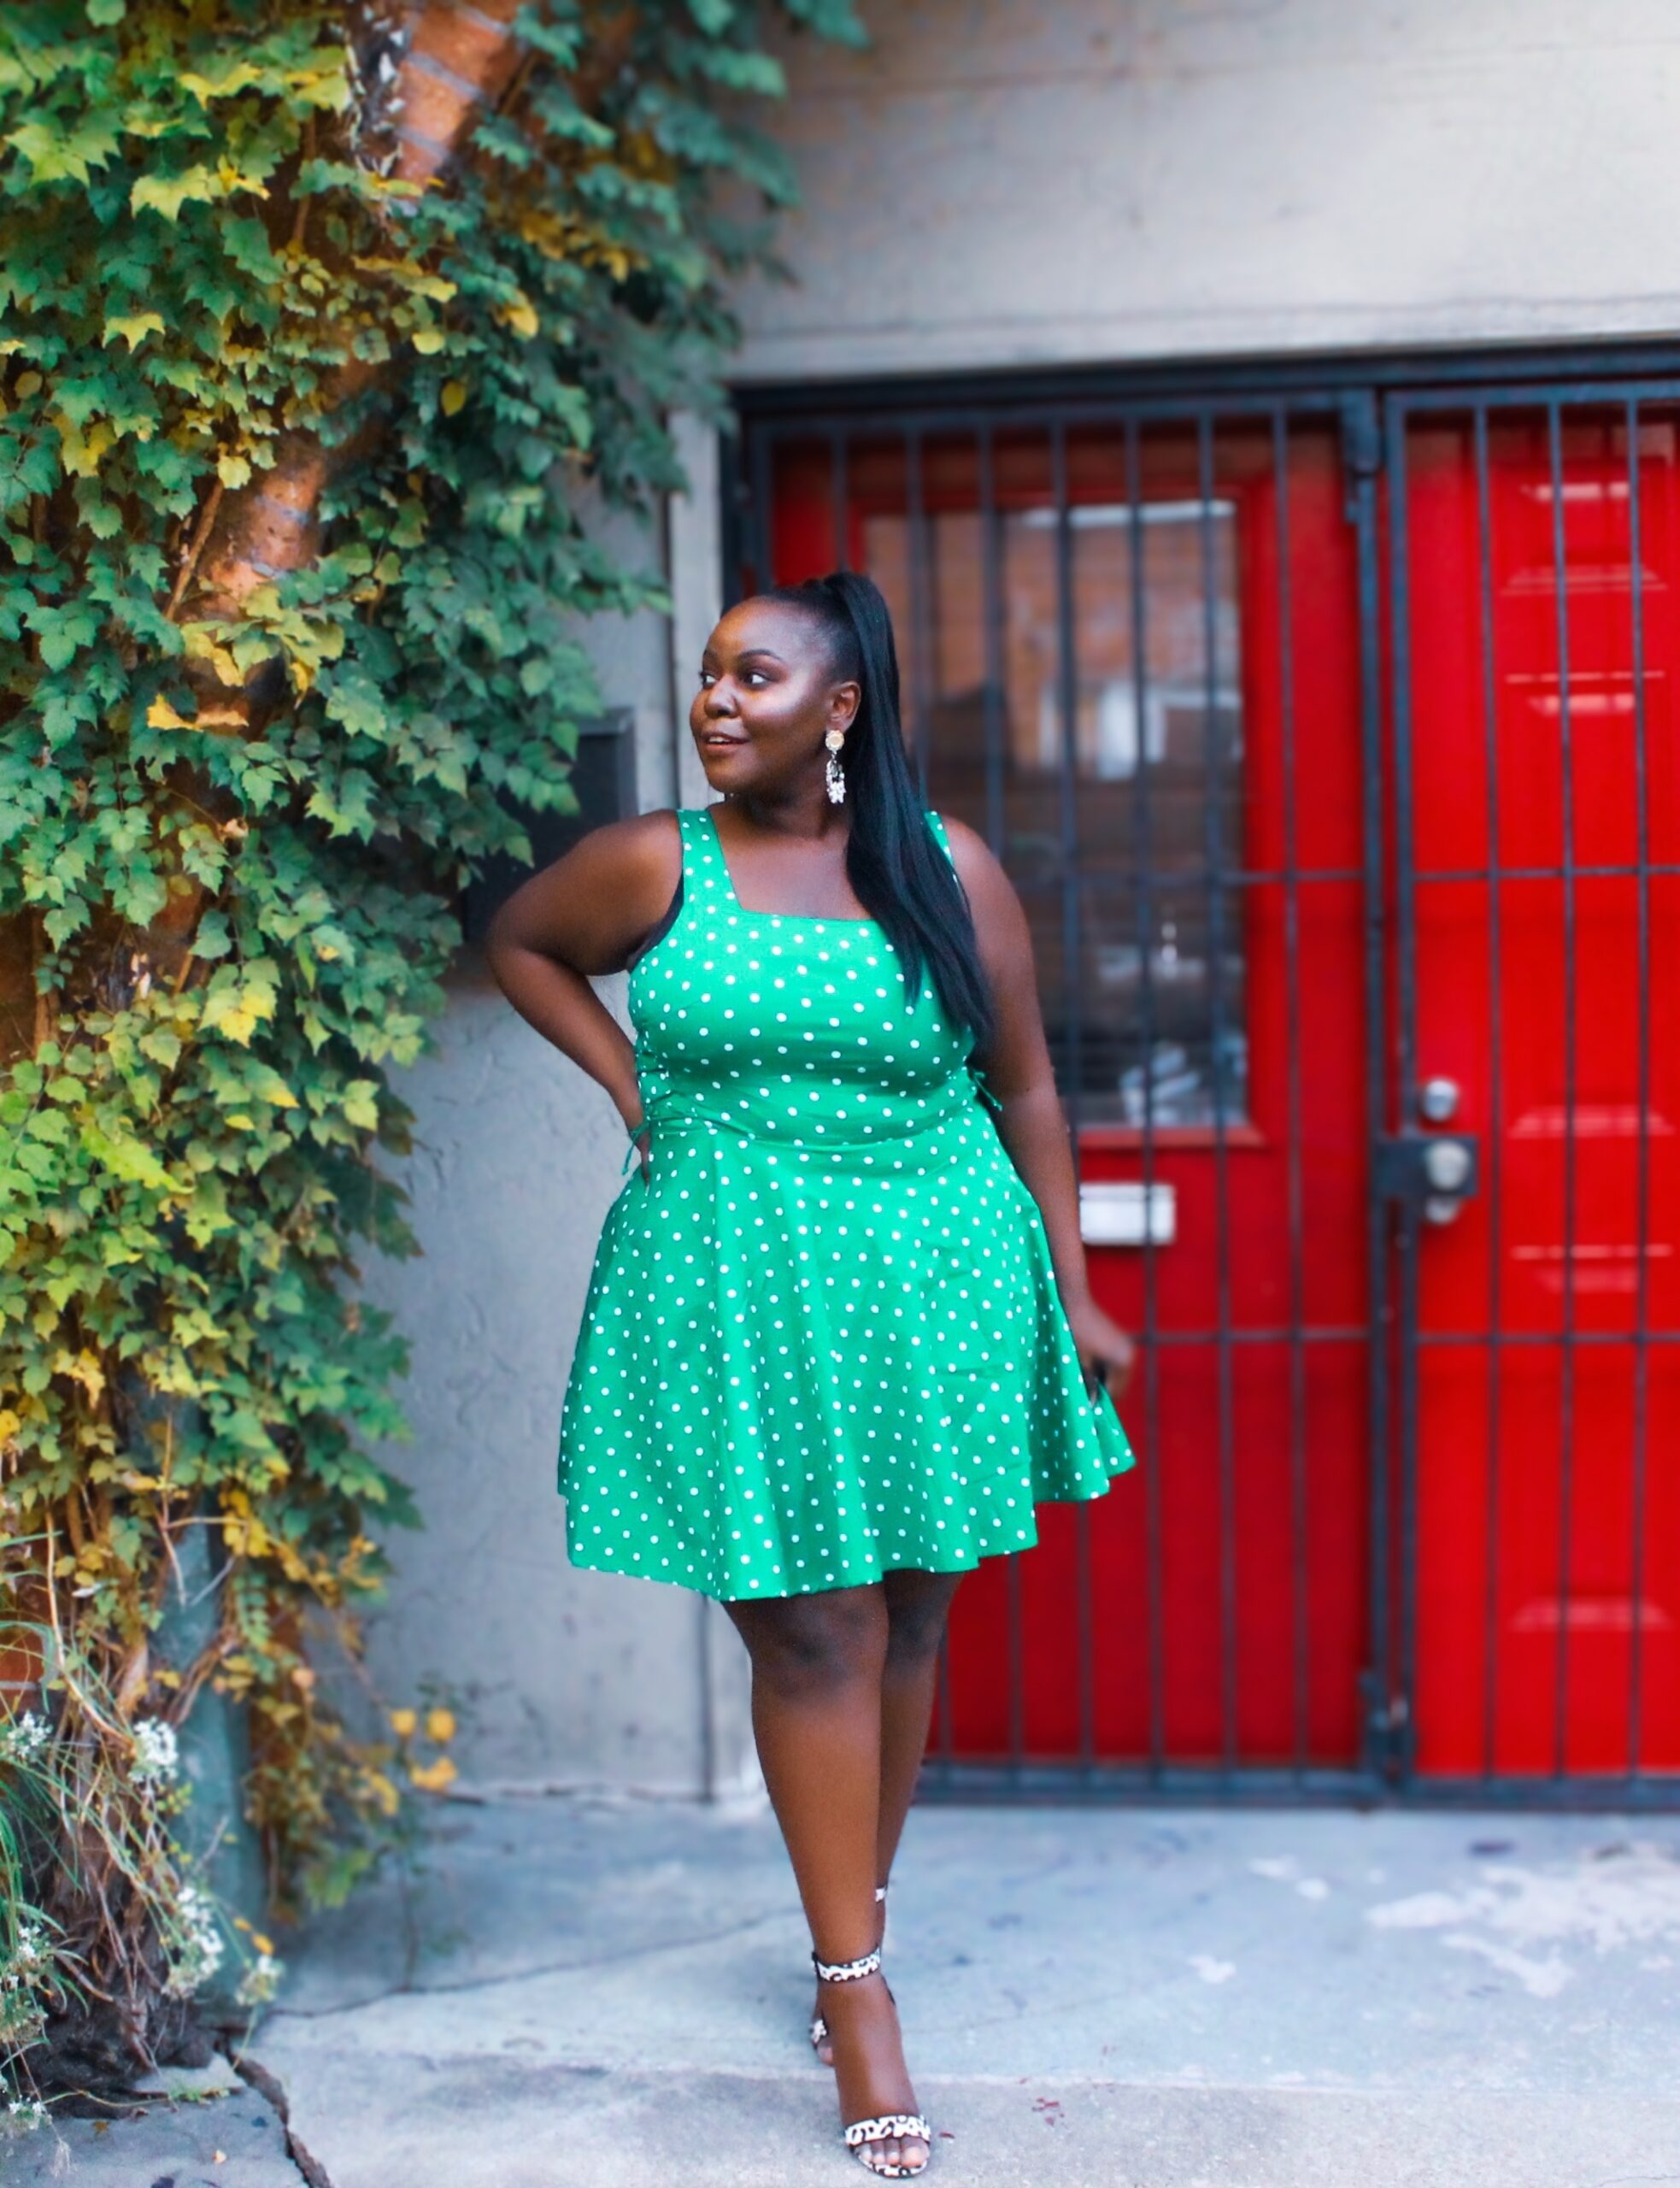 lifestyle blogger, texas houston influencer, affordable, classy, fabulous, friends, parents, black girl, dark skin, holiday outfit ideas, inspiration, trendy, chic, stylish, fashionable, blogger millennial Friendly holiday gift guide, wellness, style blogger